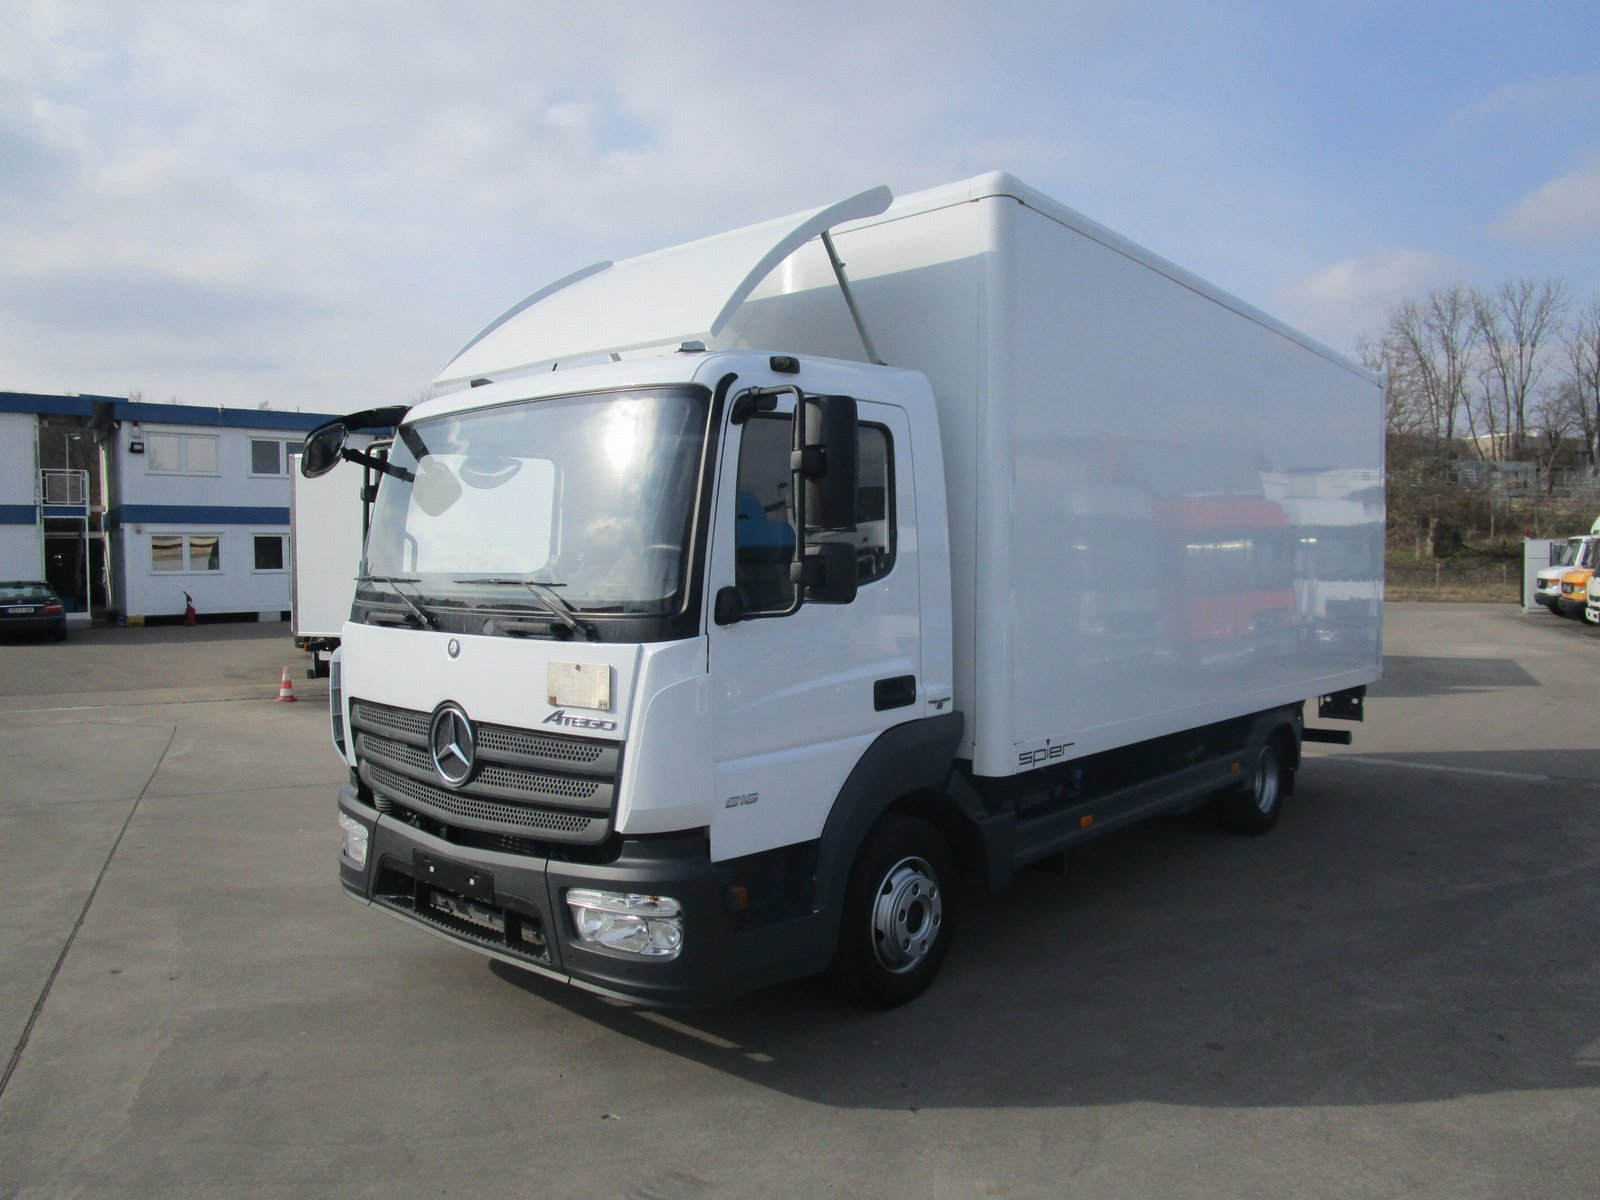 ATEGO IV 816 L Koffer 6,1 m LBW 1 to.*EURO 6*AHK